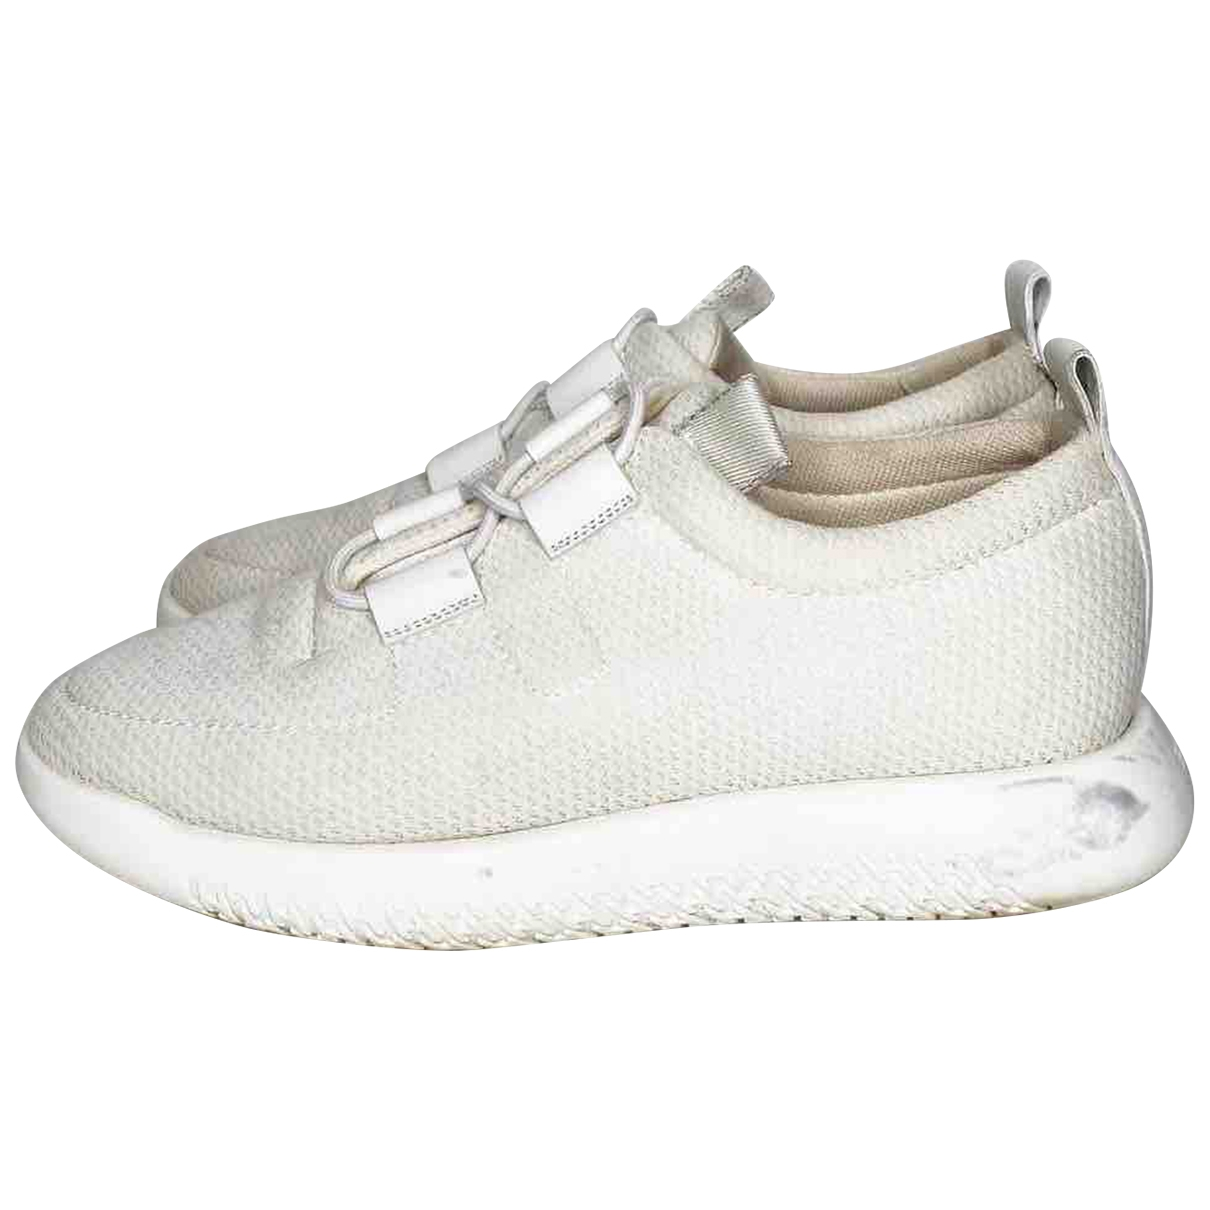 Hermès Team White Cloth Trainers for Women 39 EU